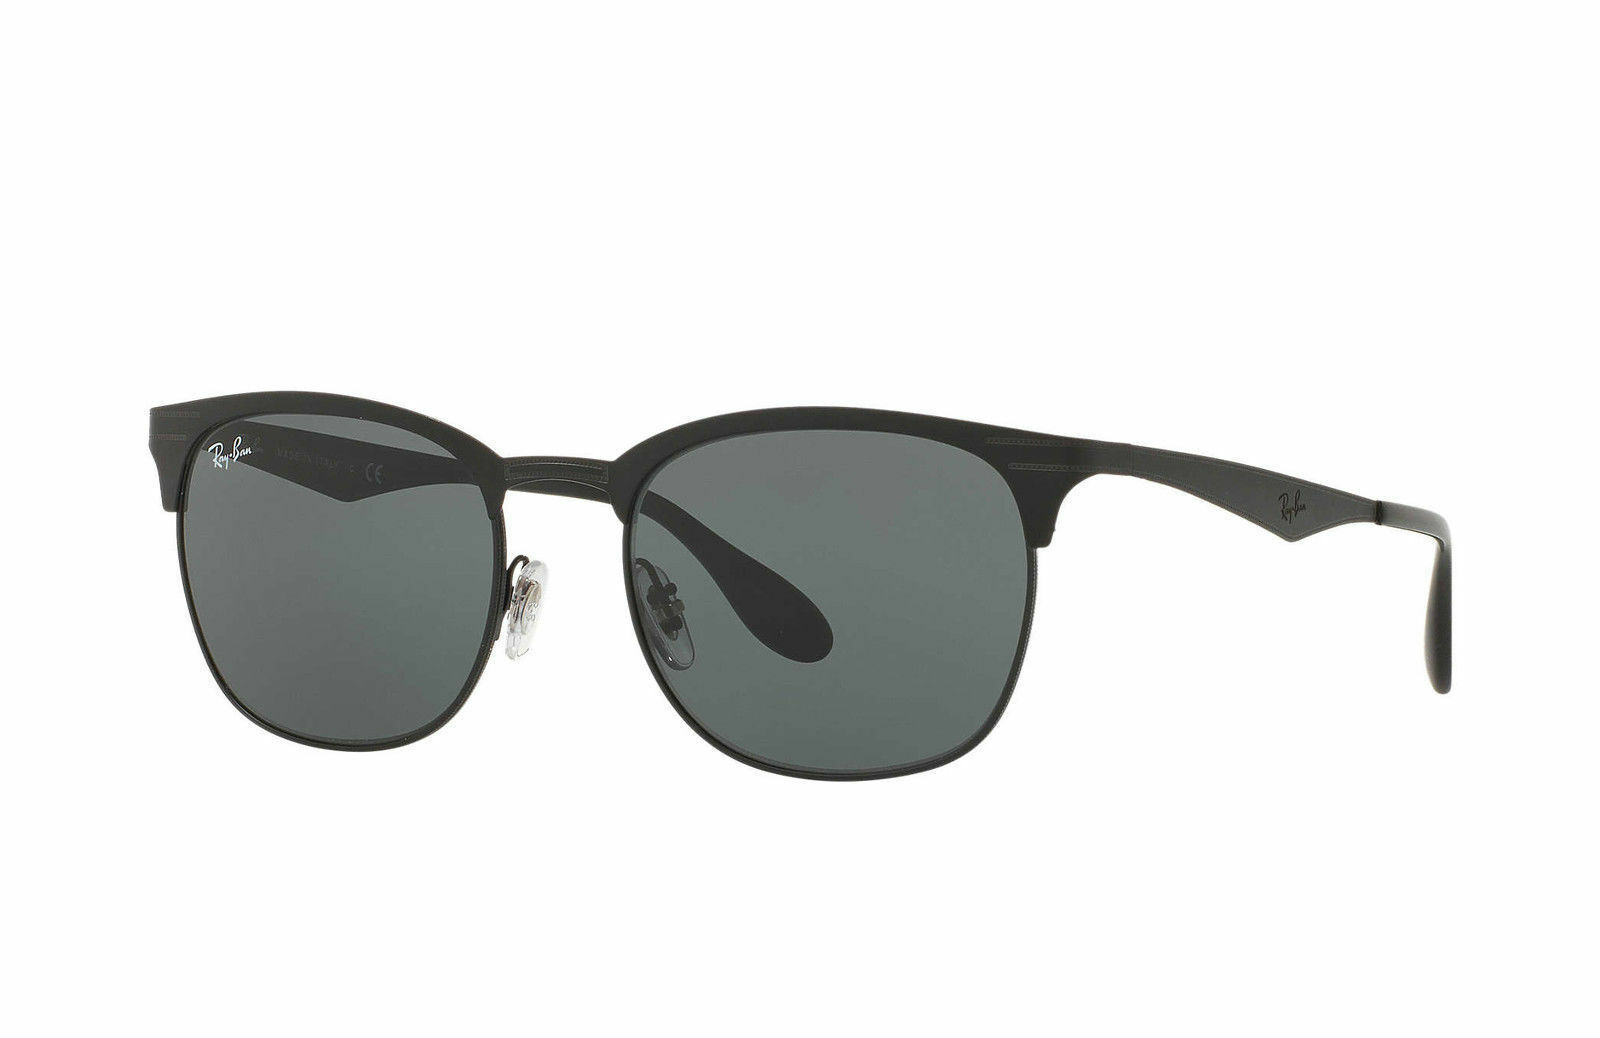 ce29148223 Sunglasses Ray-Ban Rb3538 186 71 53 Matte Black on Shiny for sale ...